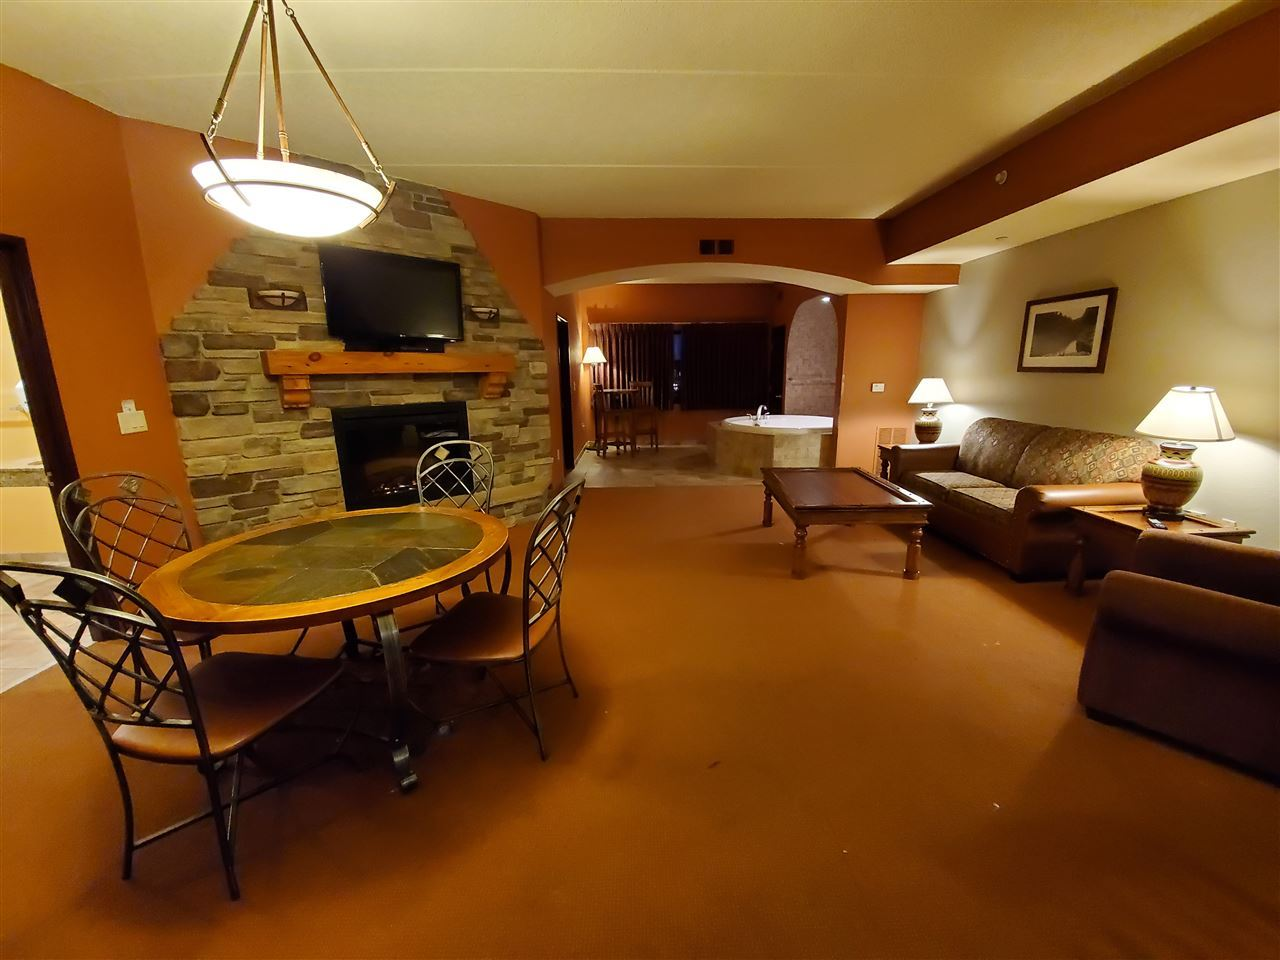 2411 River Rd #2432, Wisconsin Dells, WI 53965 - #: 1888719